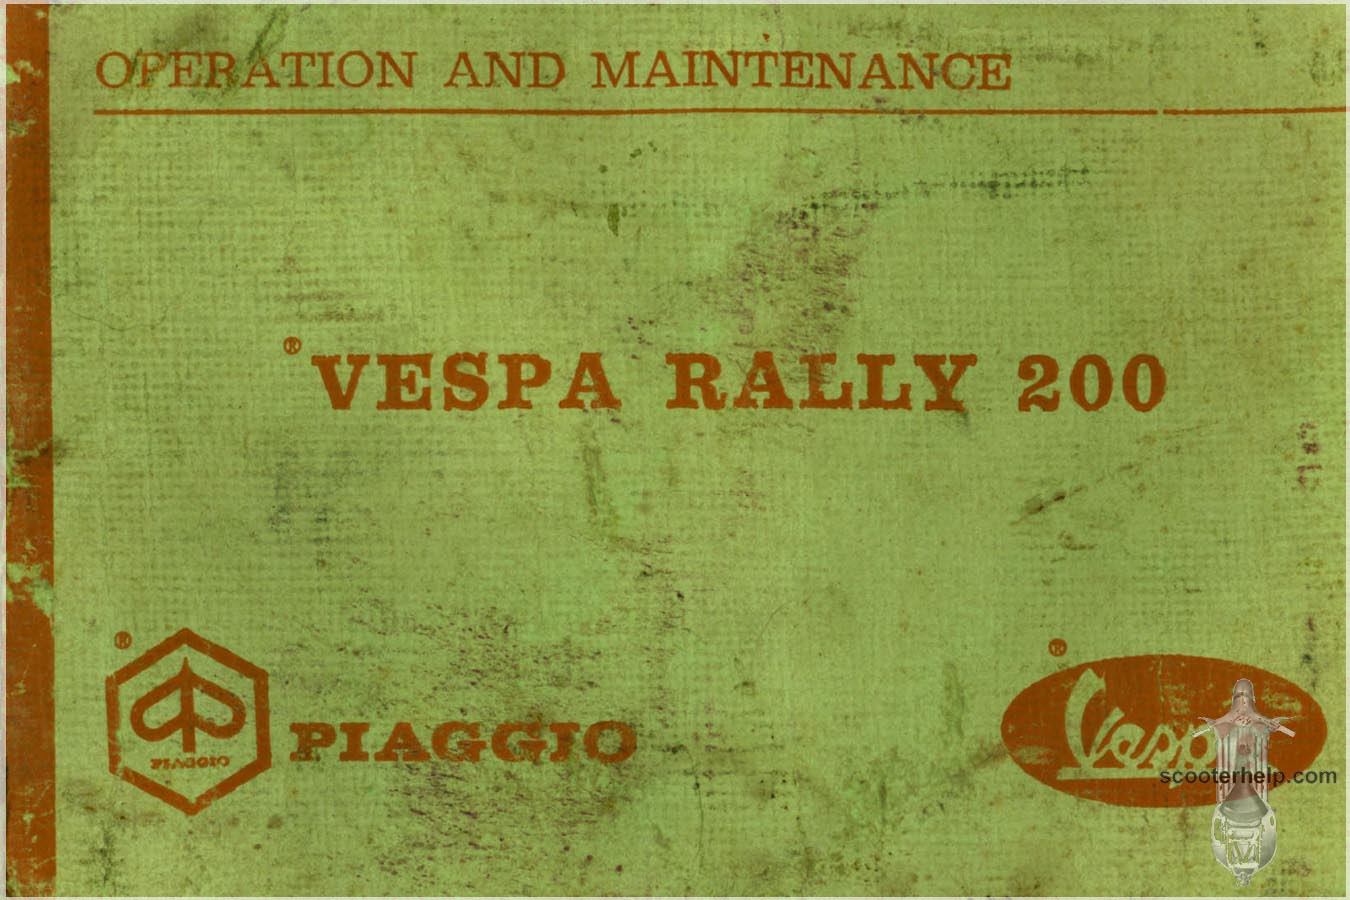 Vespa rally 200 manual.